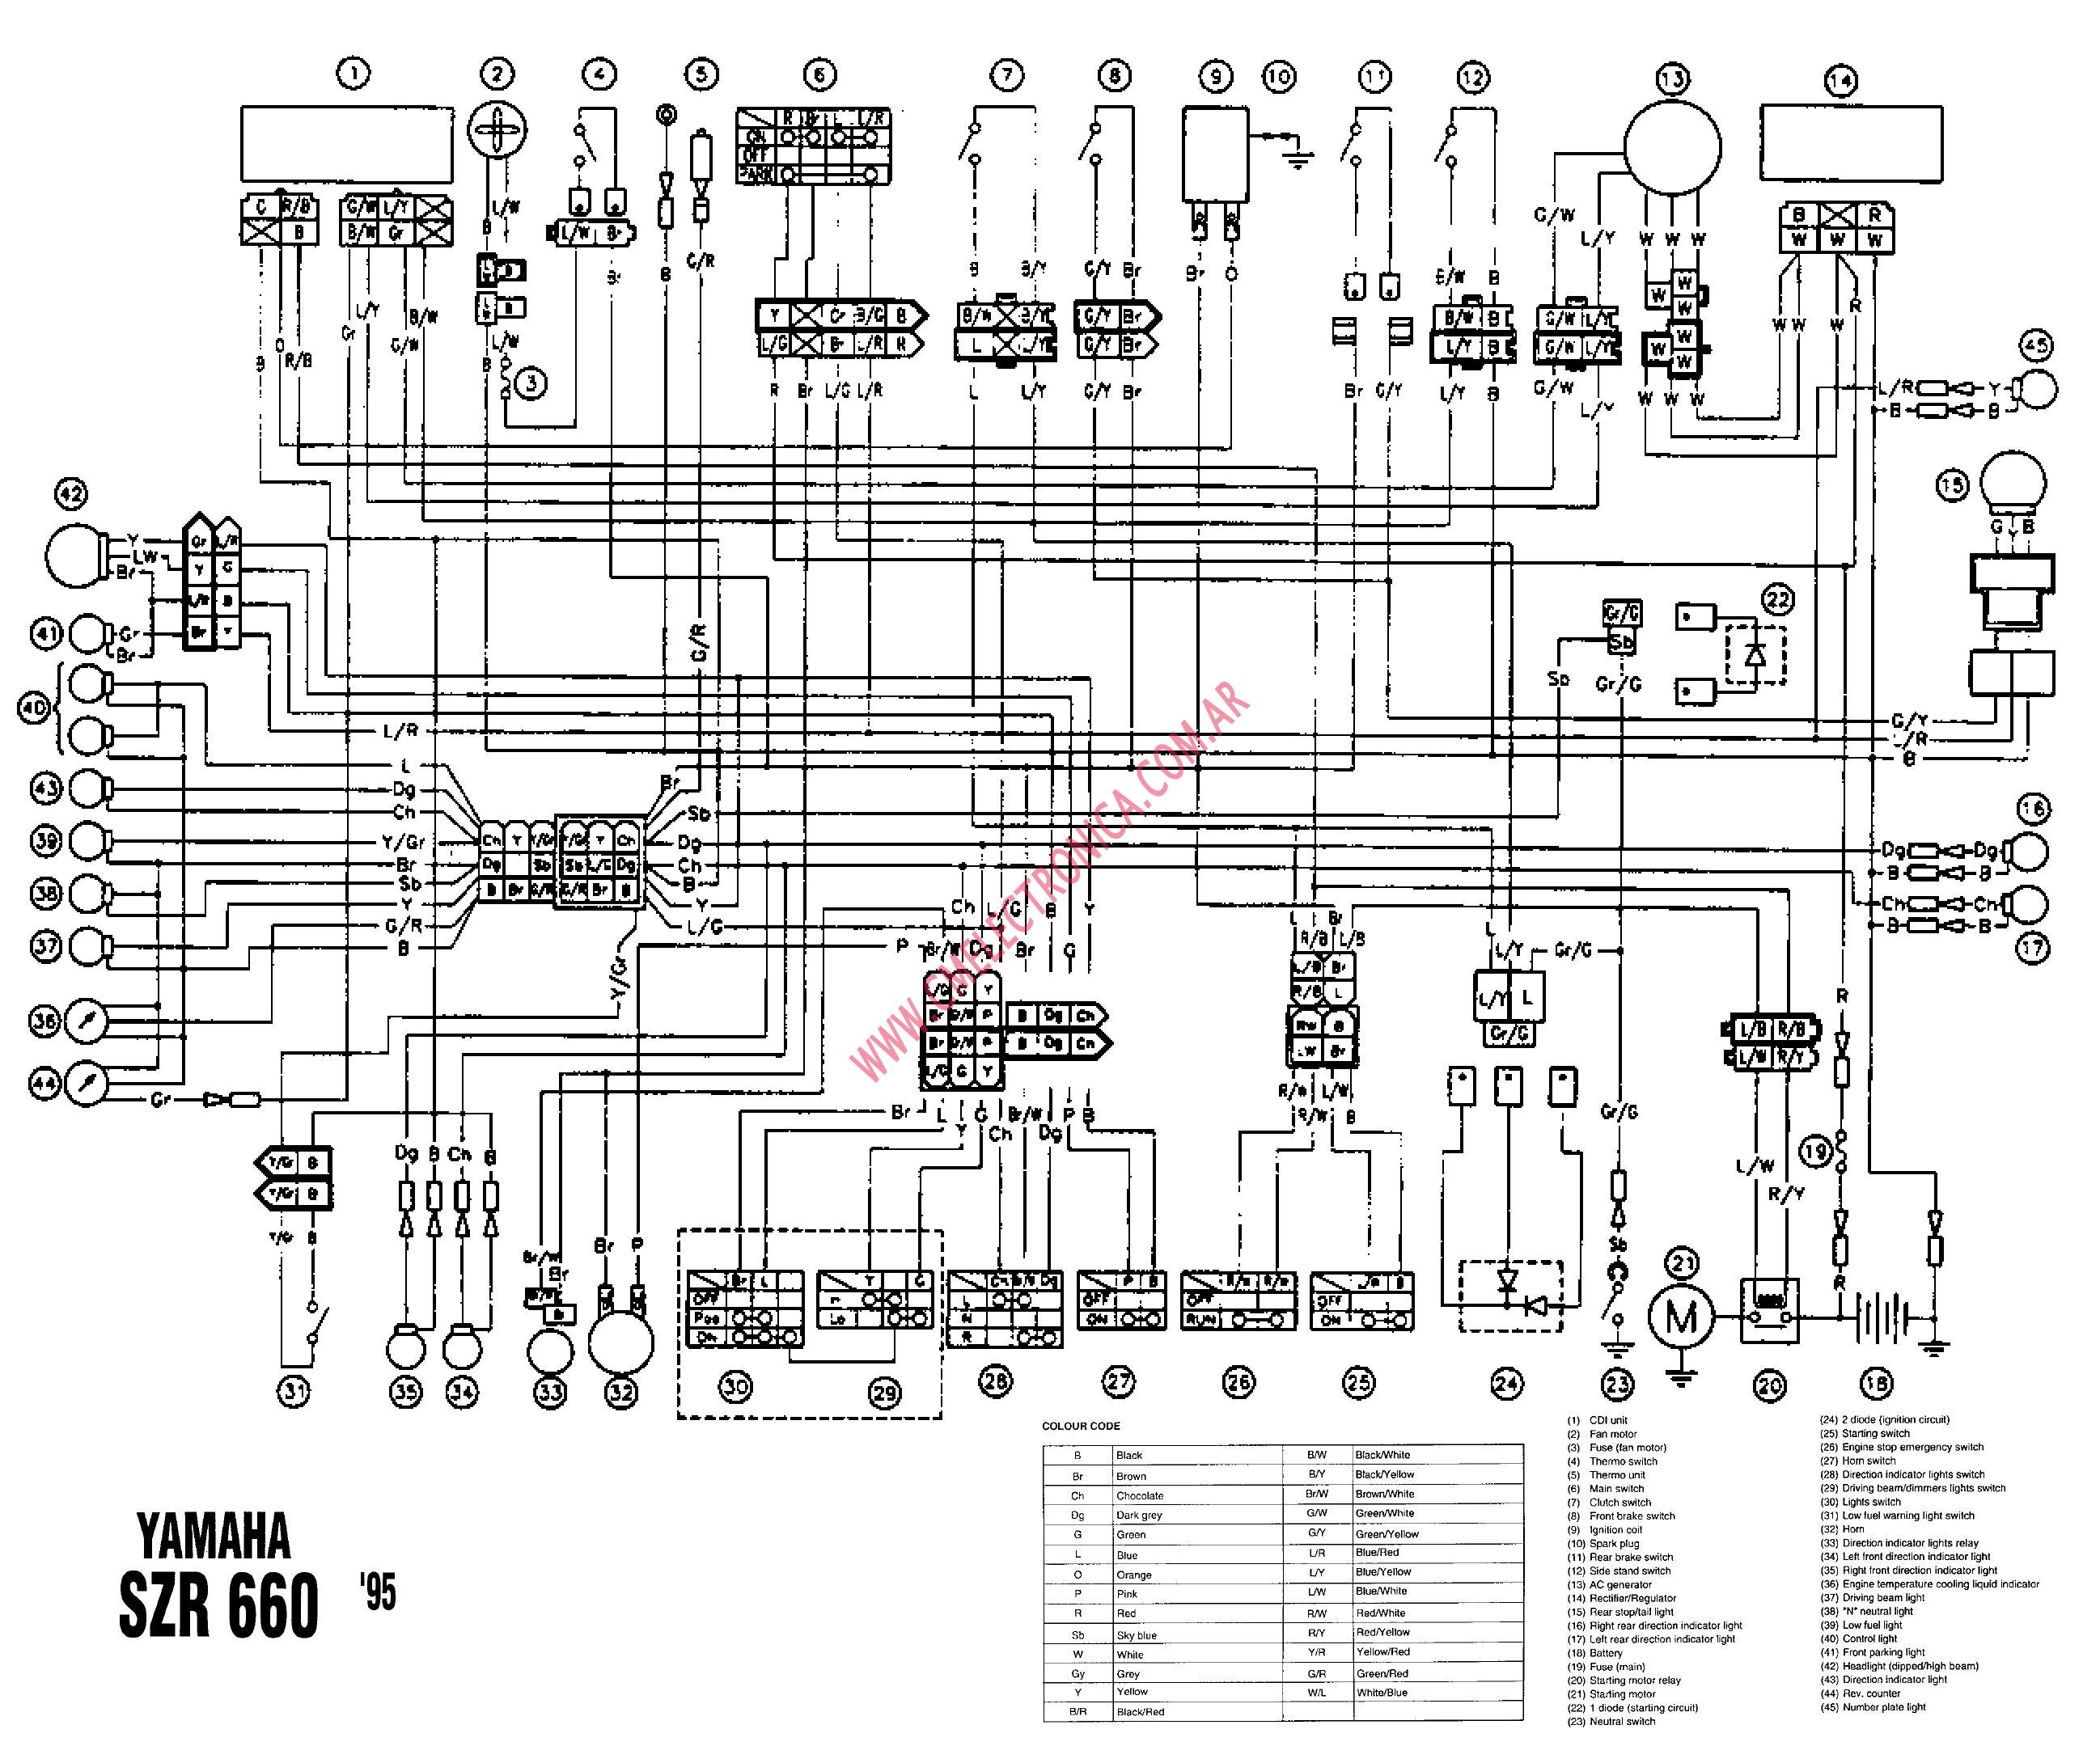 2006 yamaha rhino wiring diagram 32 wiring diagram